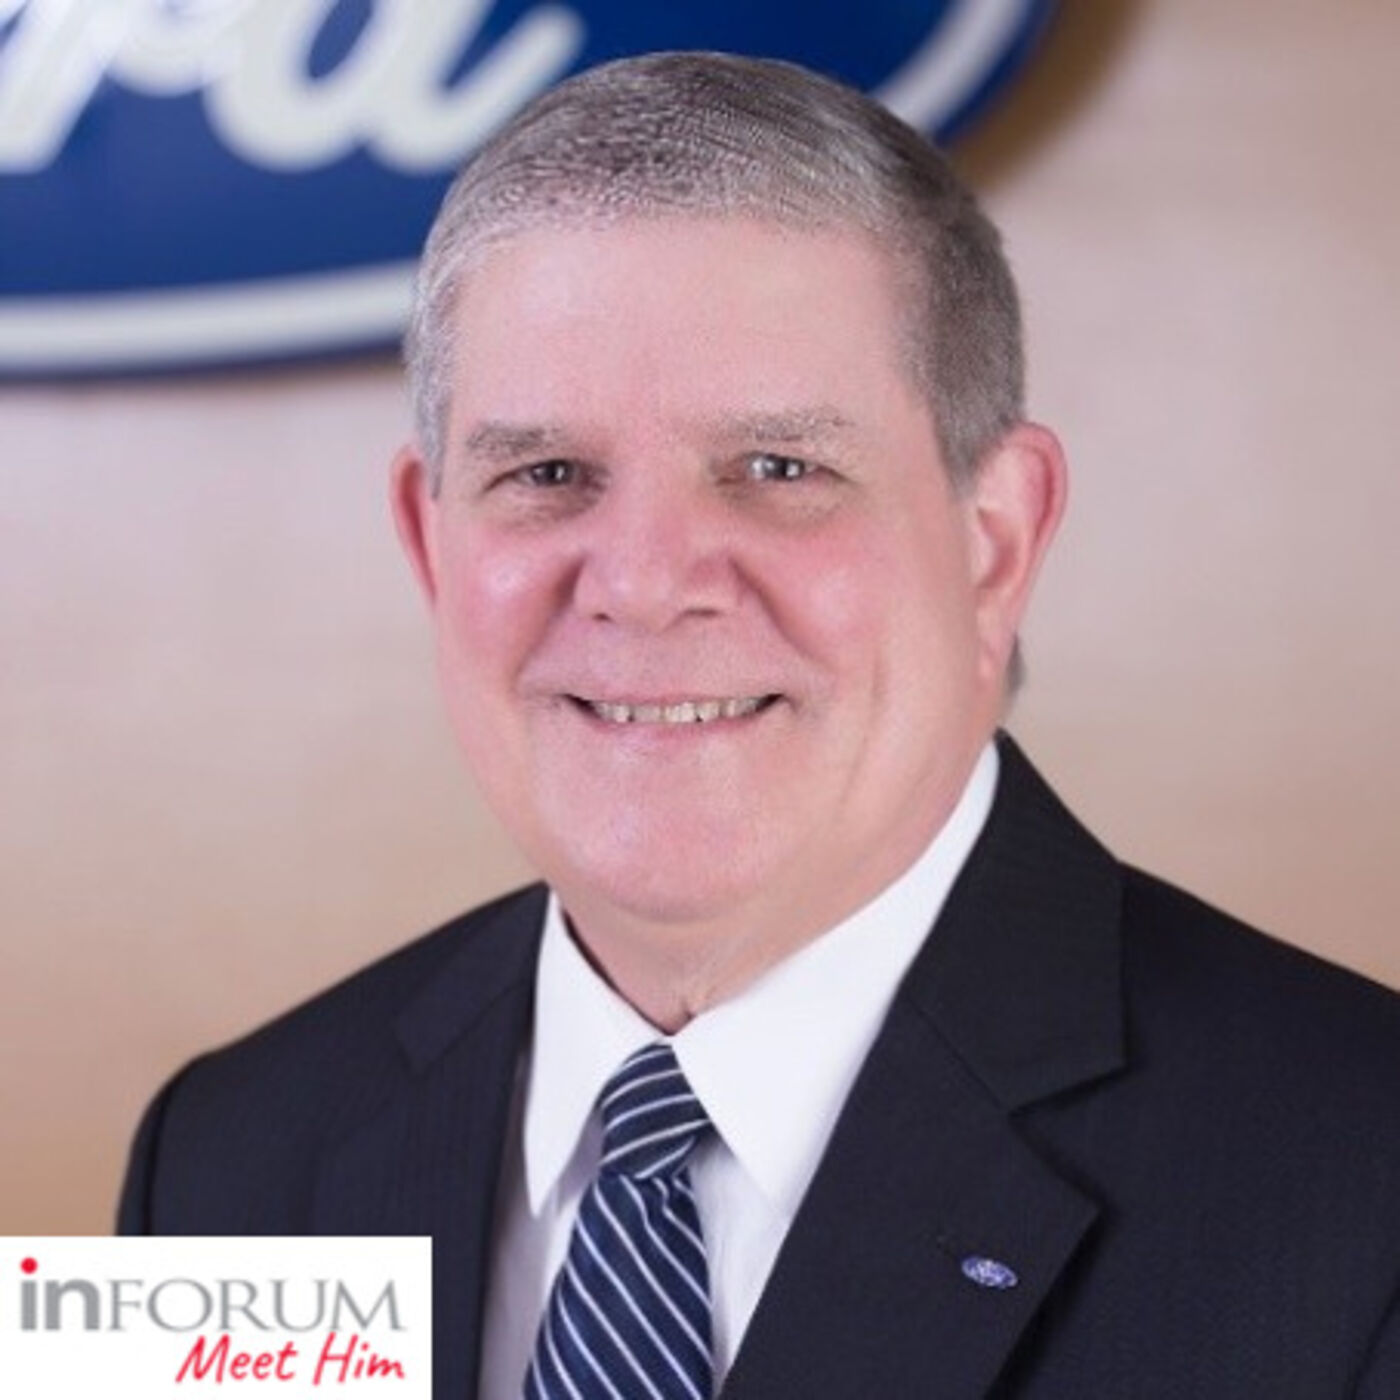 Episode 11: David Schoch, former Group VP and President, Asia Pacific, Ford Motor Co.